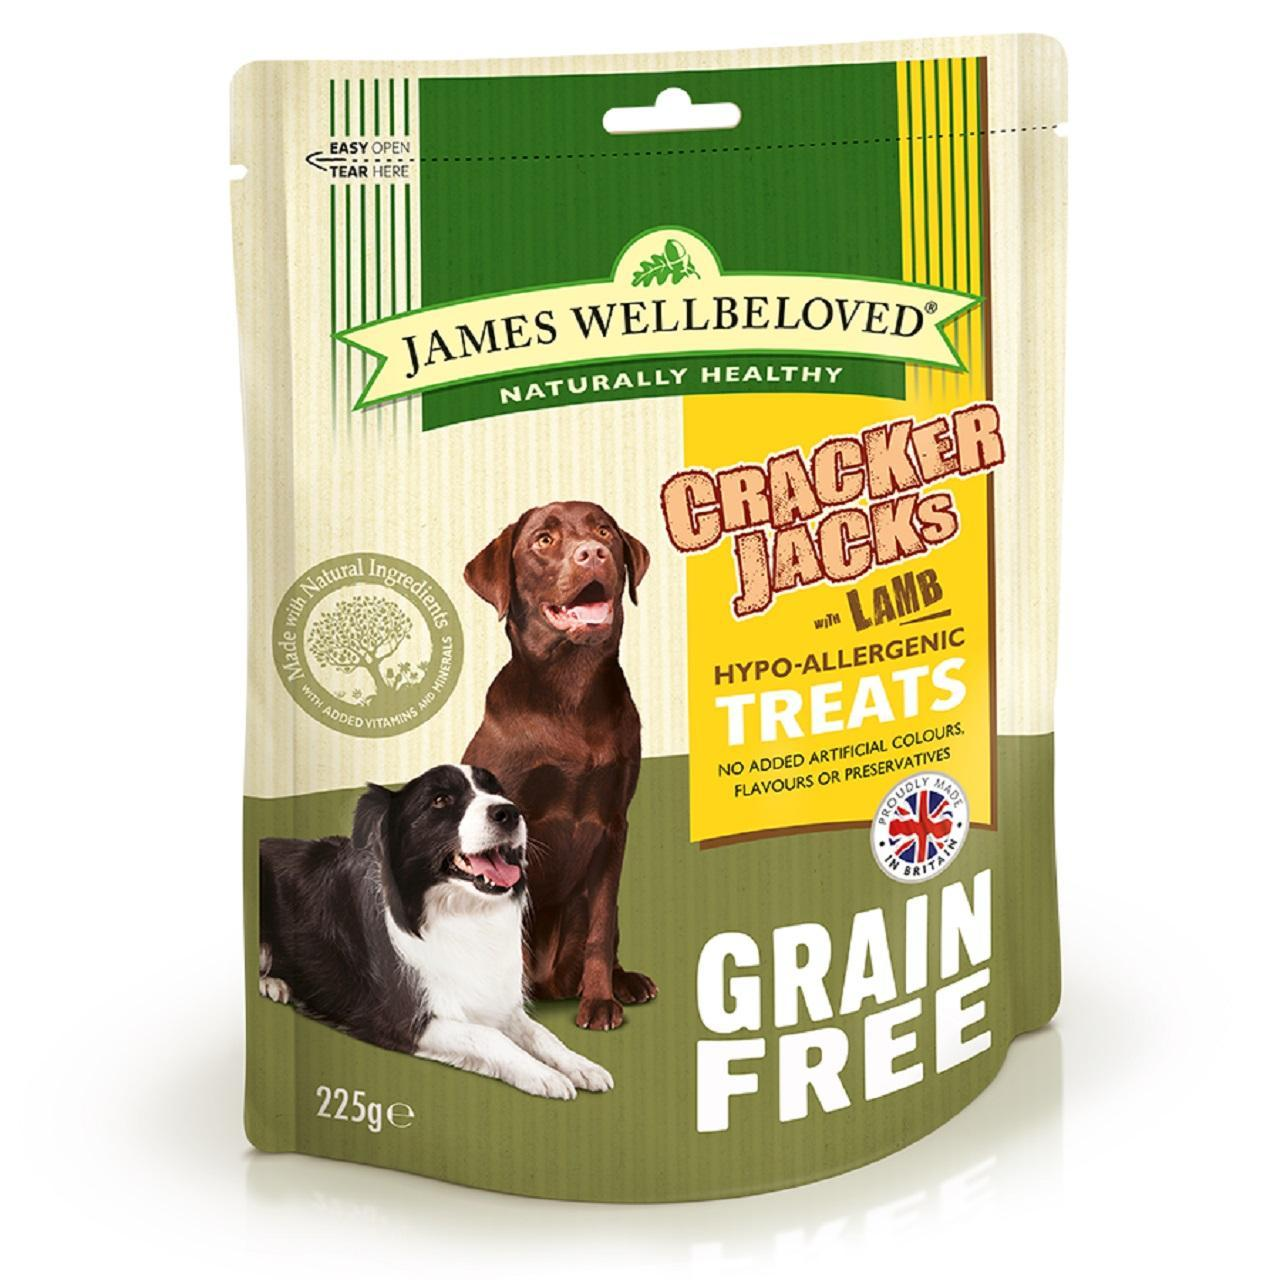 An image of James Wellbeloved Grain Free Lamb Crackerjacks